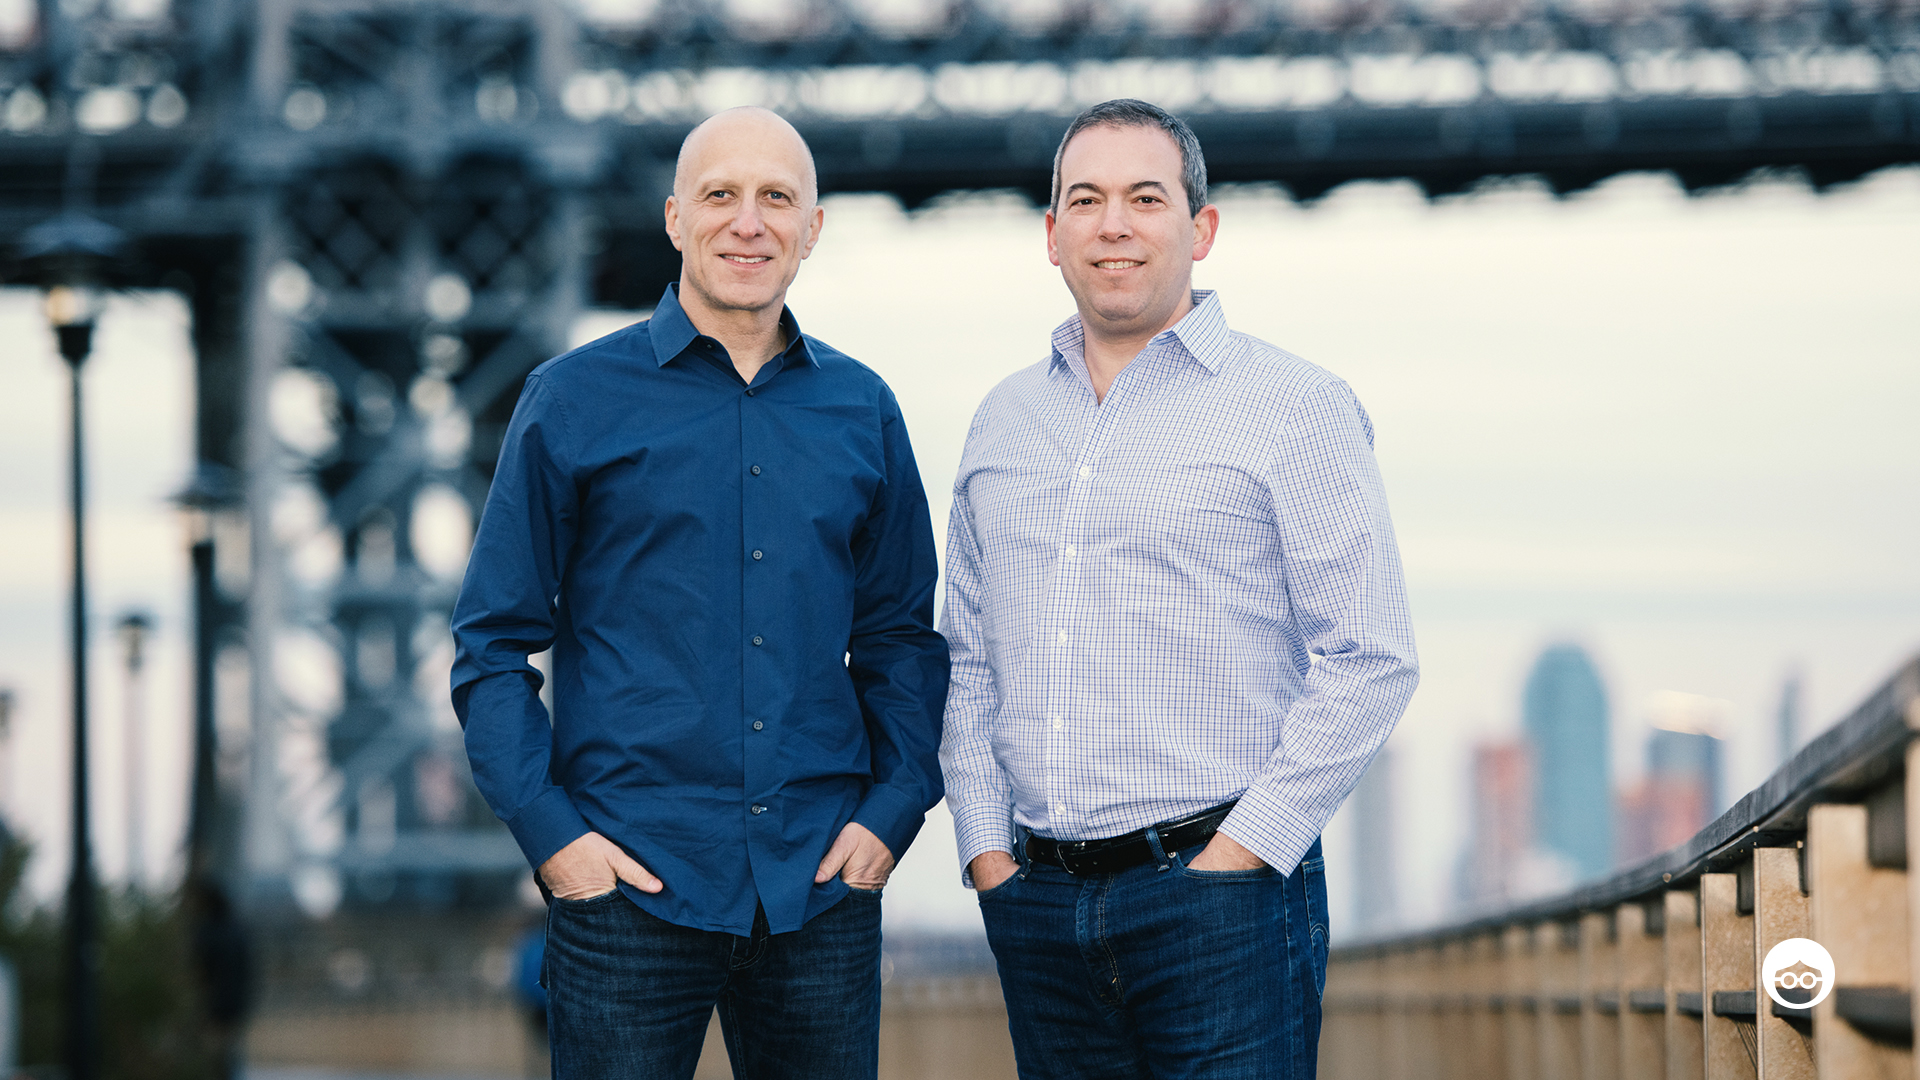 David Kostman is joining Outbrain as Co-CEO.